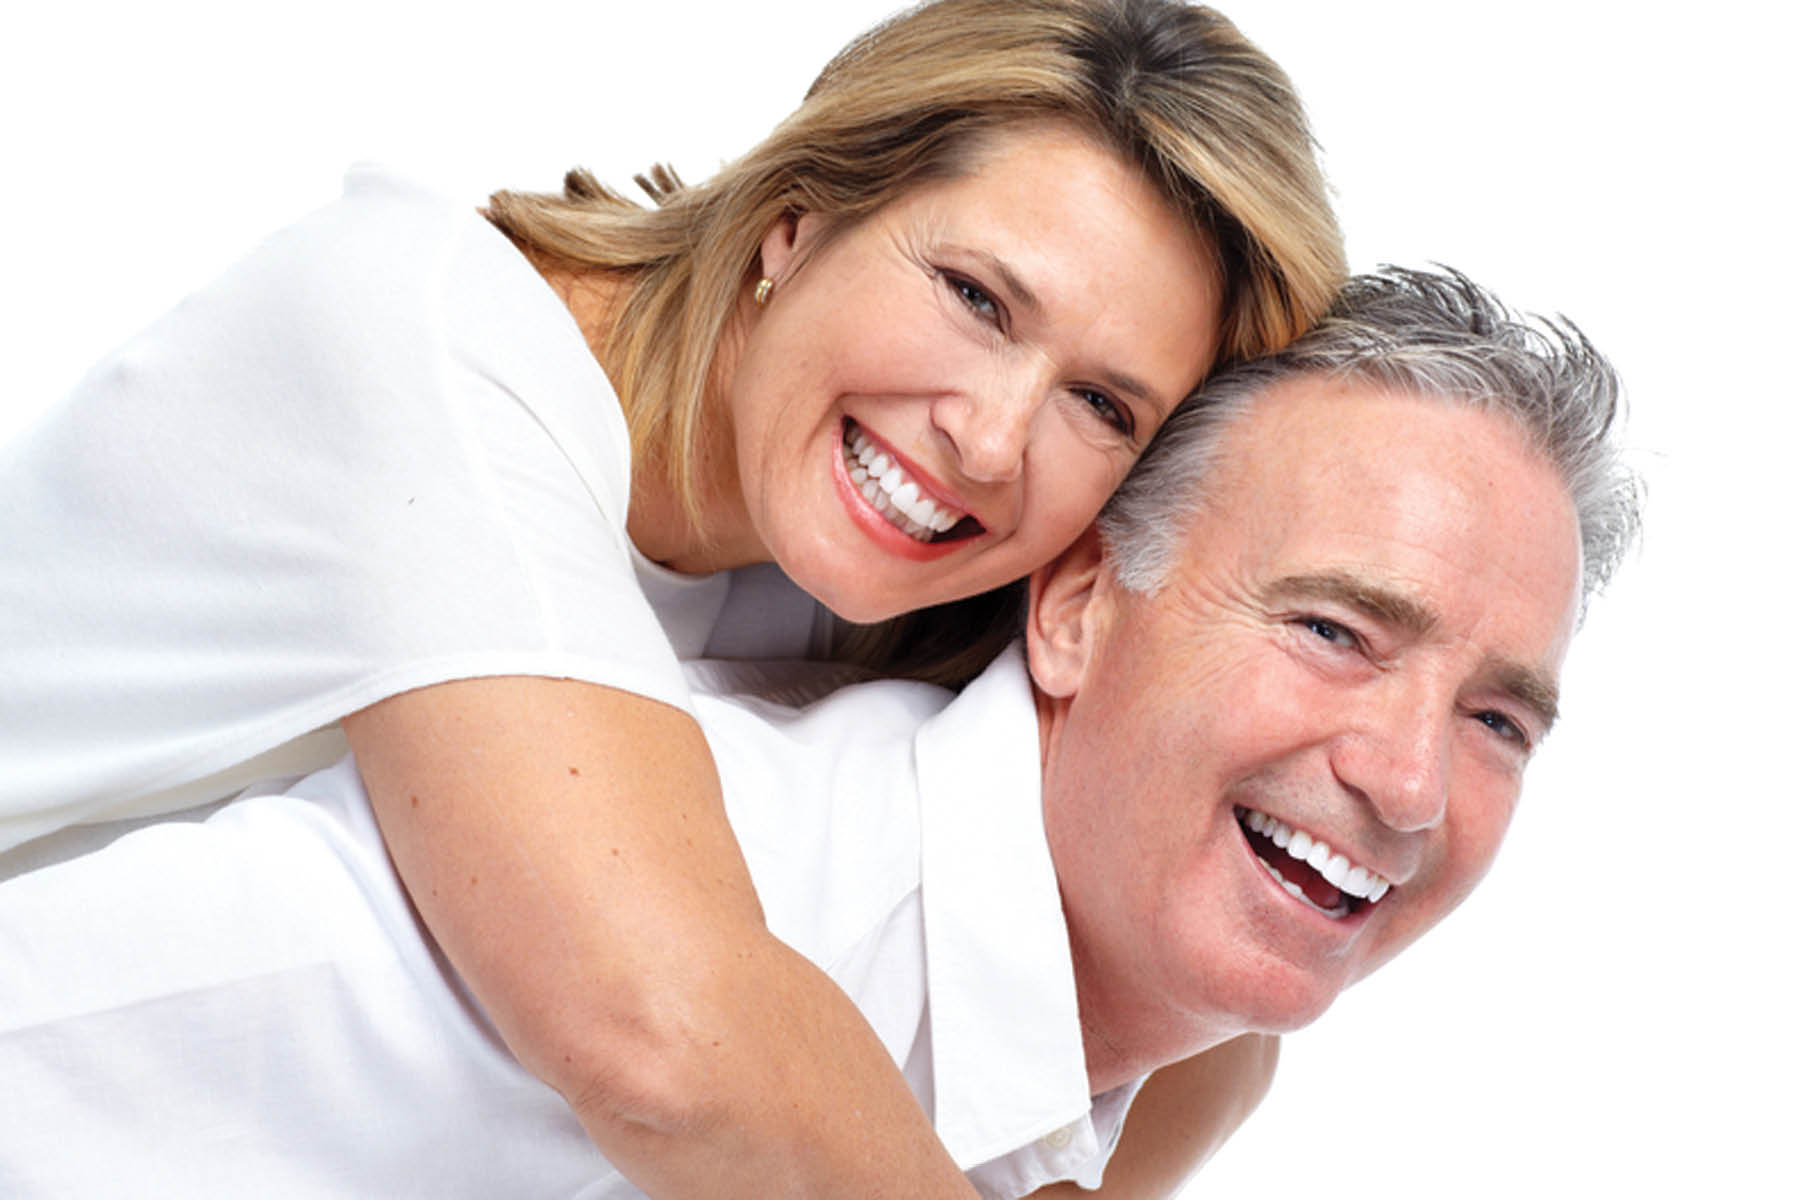 Crowns, Dental Implants, Teeth Cleaning, Dentures, Veneers, Pediatric Dentist